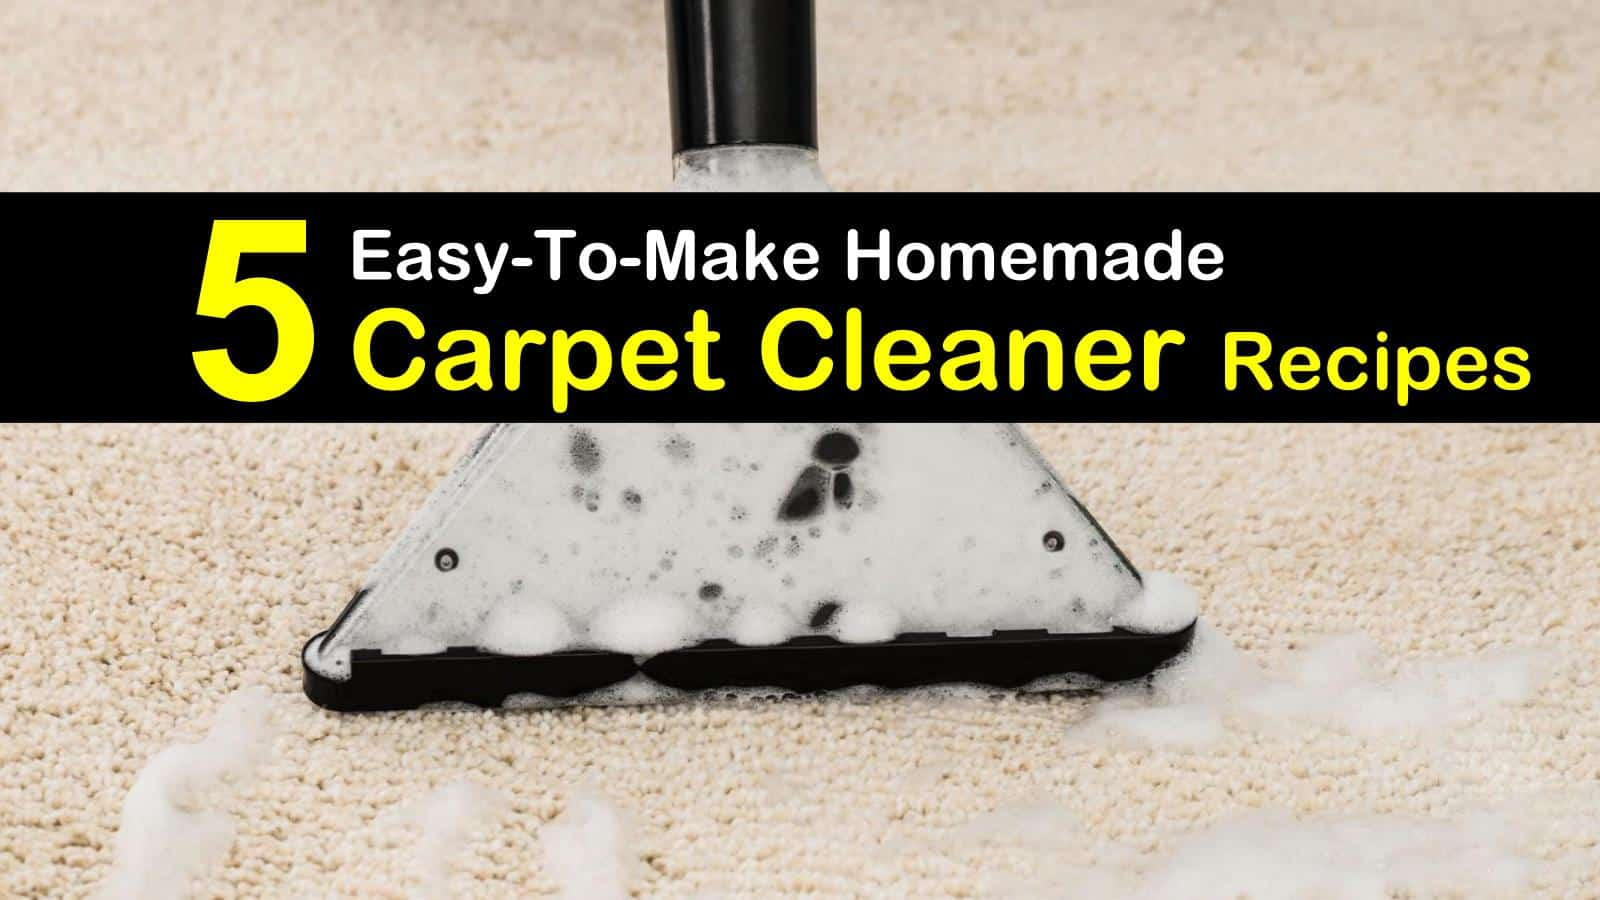 diy homemade carpet cleaner titlimg